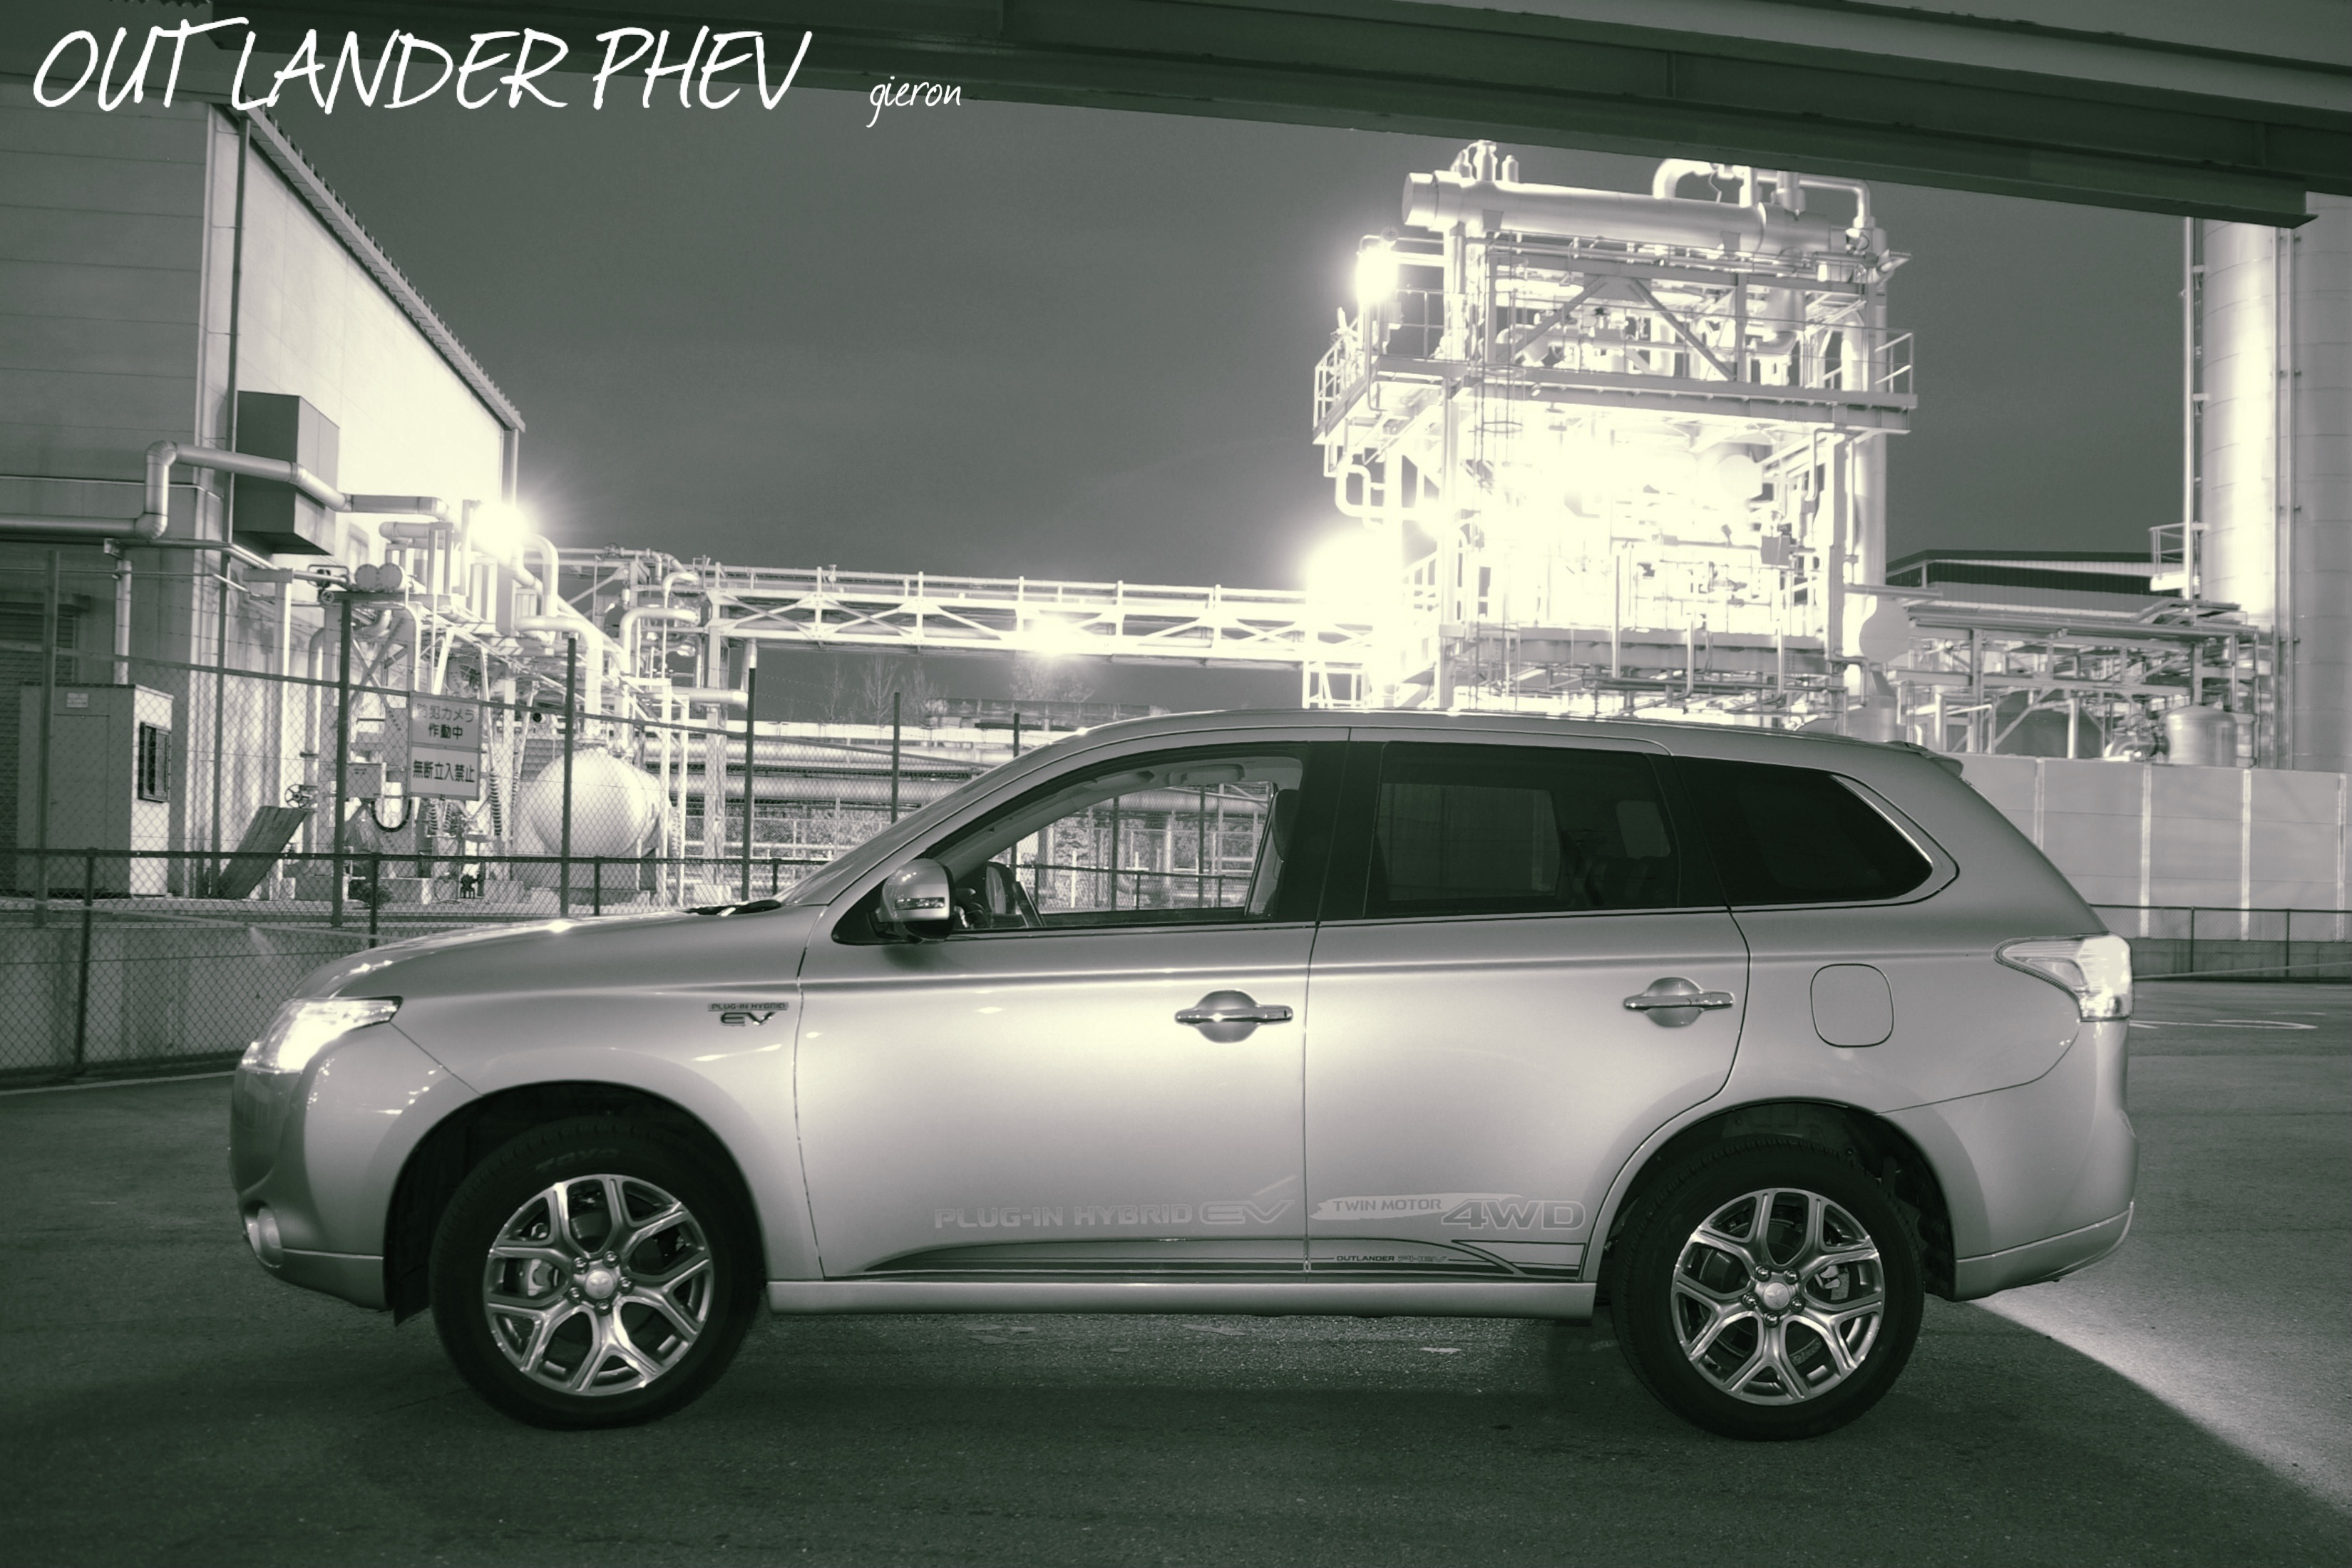 Mitsubishi outlander phev at factory